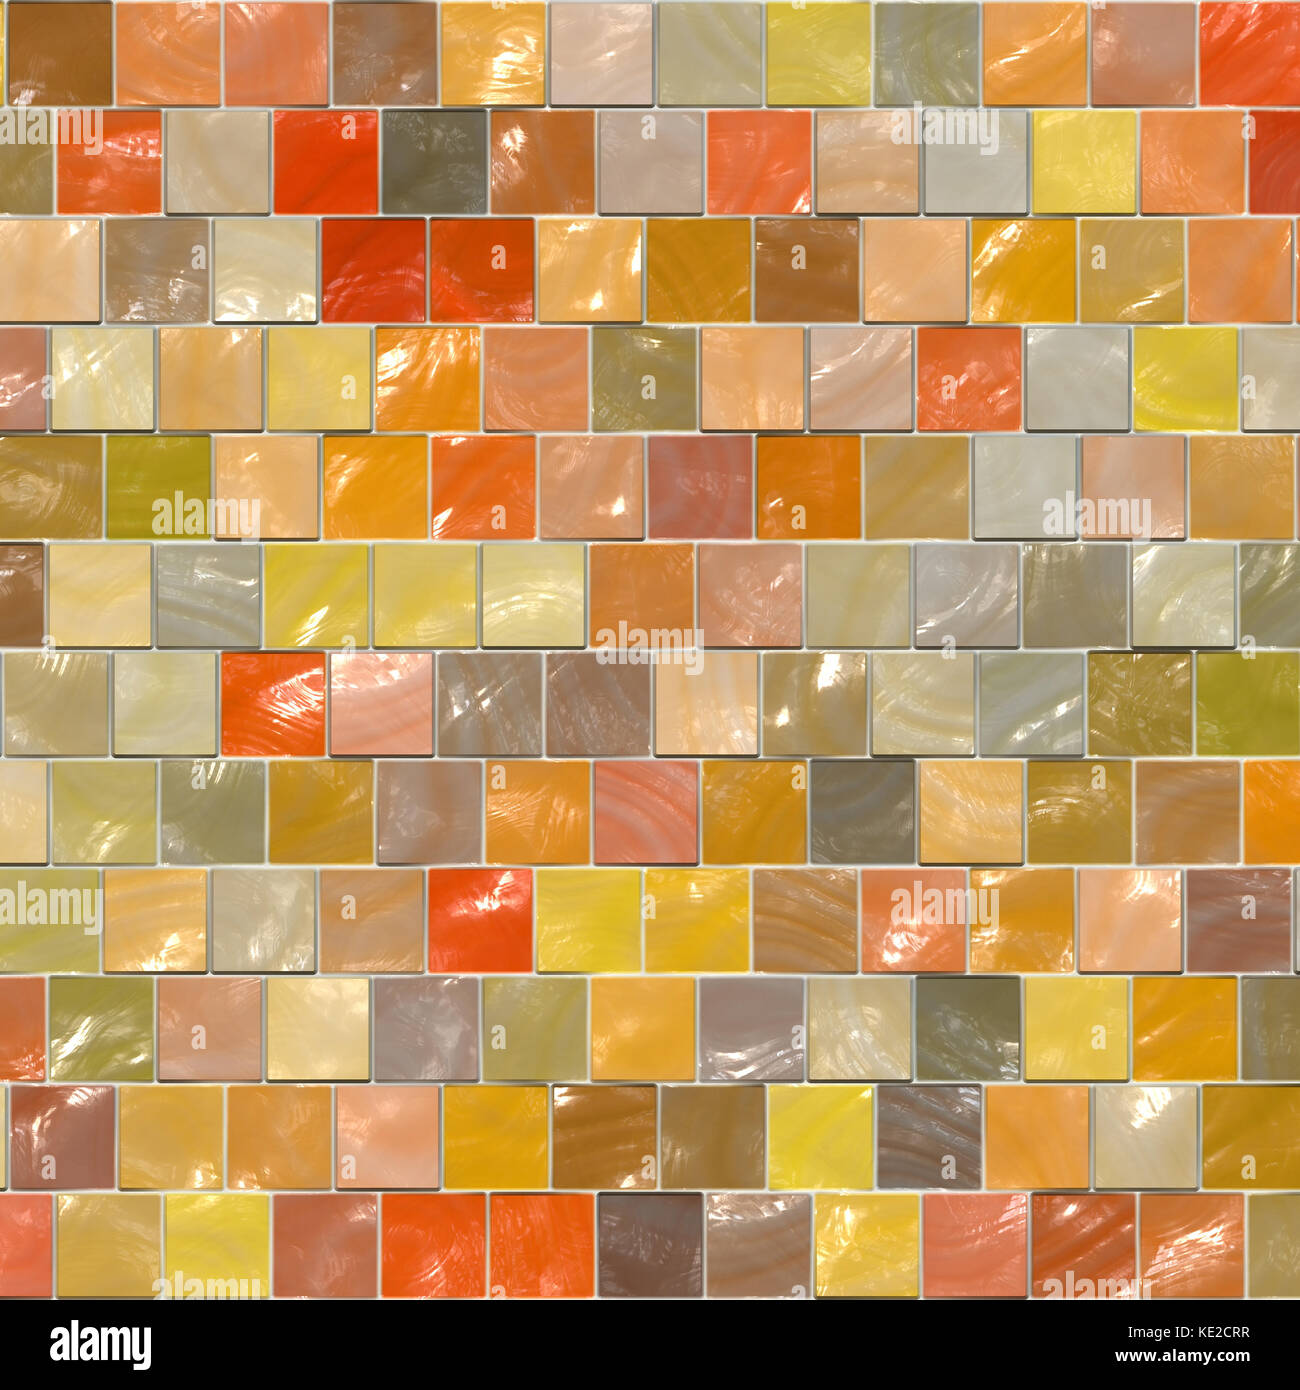 Brown square ceramic tiles stock photos brown square ceramic background from polished square ceramic tiles stock image dailygadgetfo Choice Image